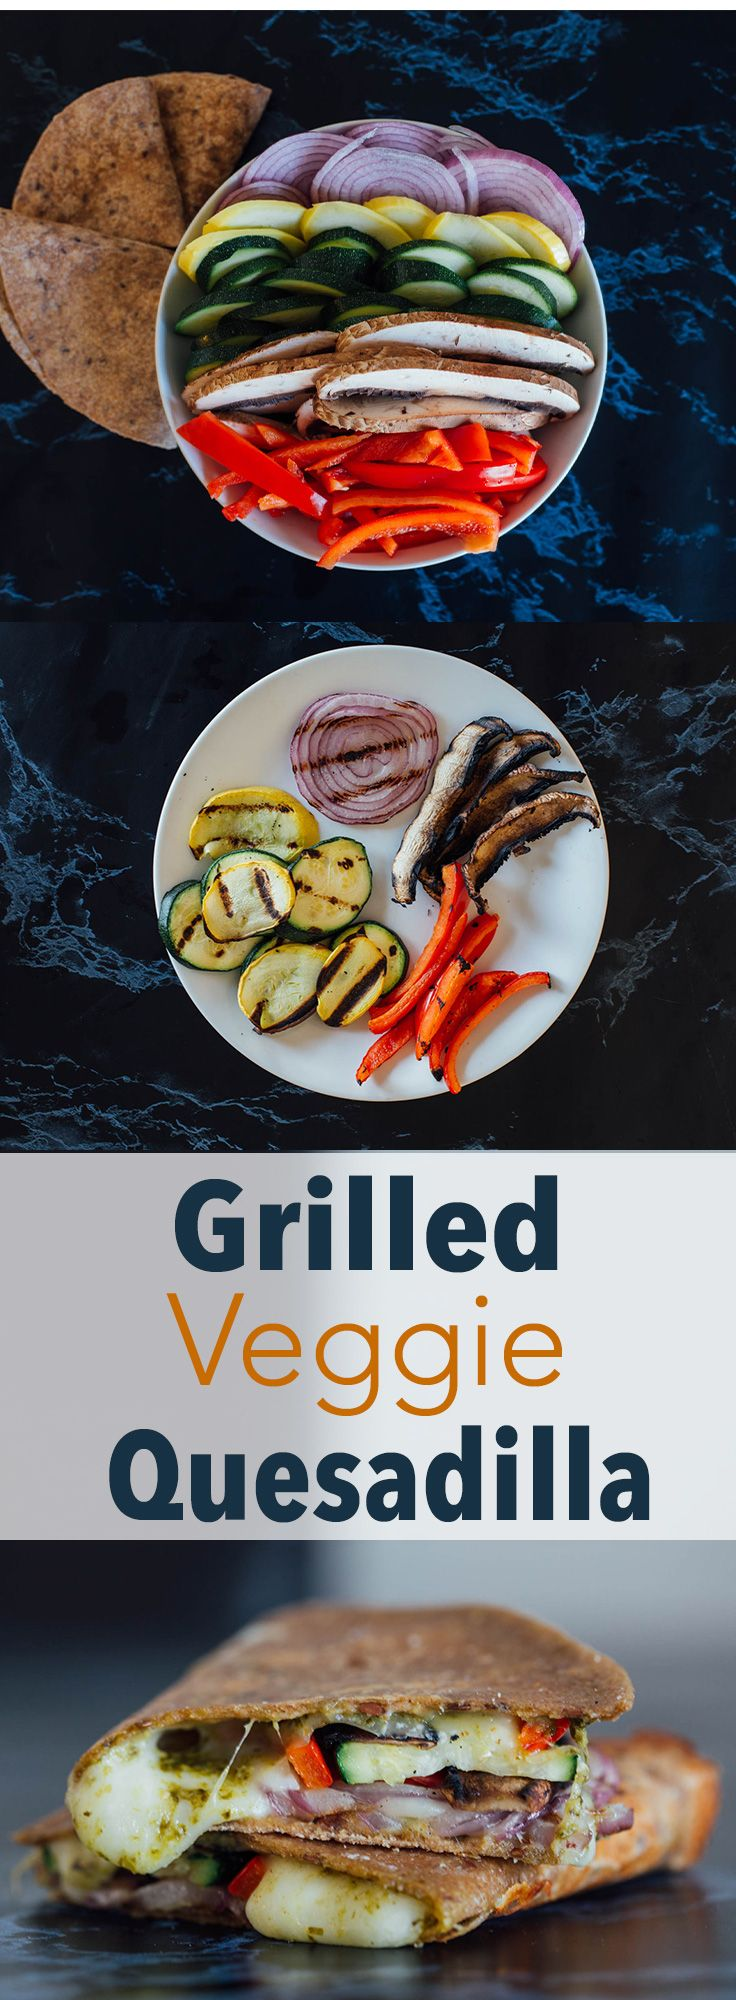 Grilled Veggie Quesadilla -- Indulge in your craving for warm, gooey cheese without wrecking your diet. // recipes // lunches // dinners // healthy recipes // vegetarian // quesadillas // healthy eating // clean eating // beachbody // beachbody blog // www.beachbodyblog.com